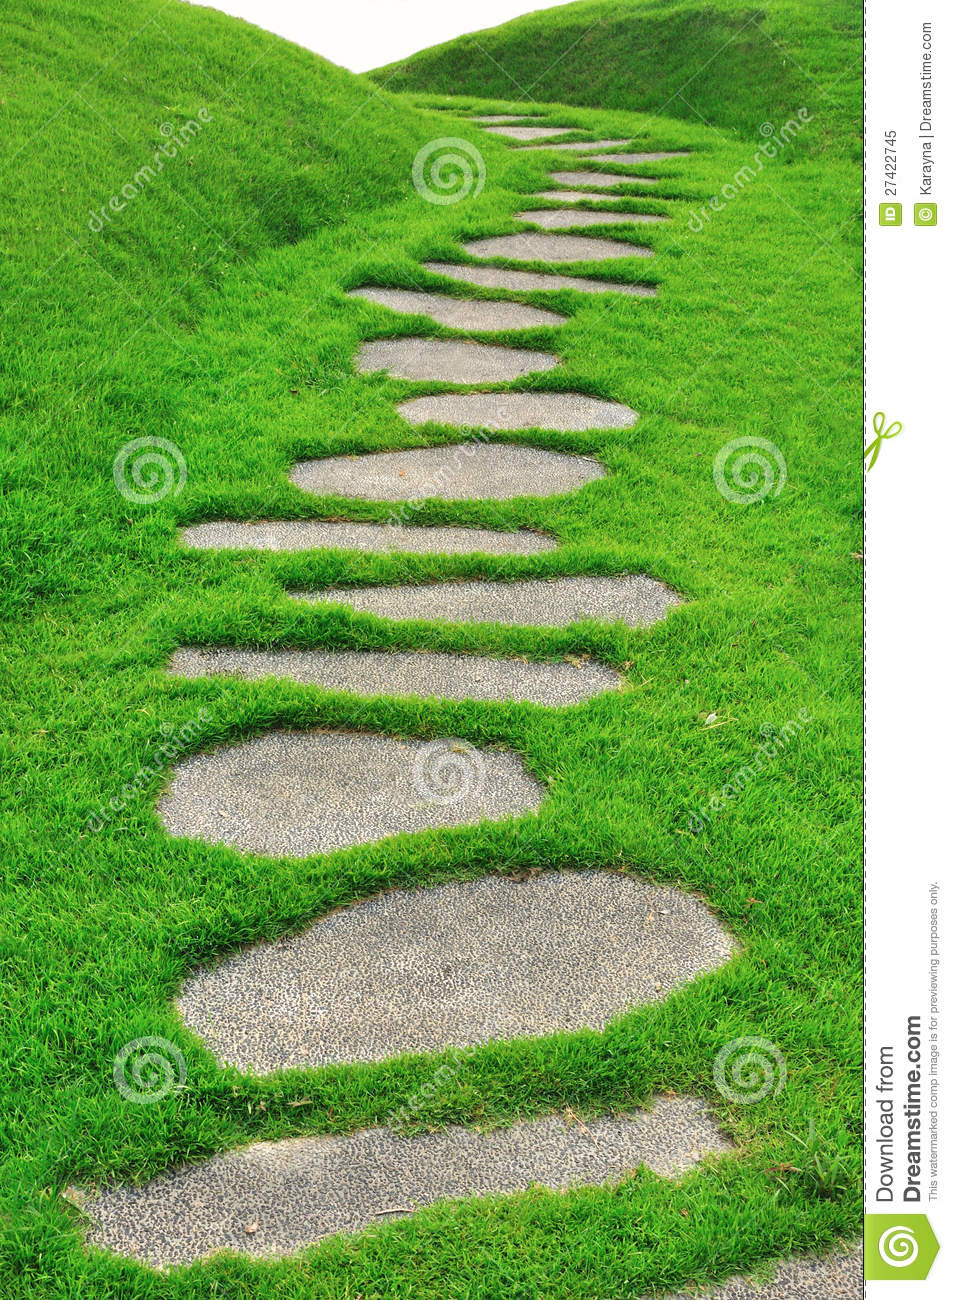 Stone path on green grass stock image image of paving for Stone path in grass